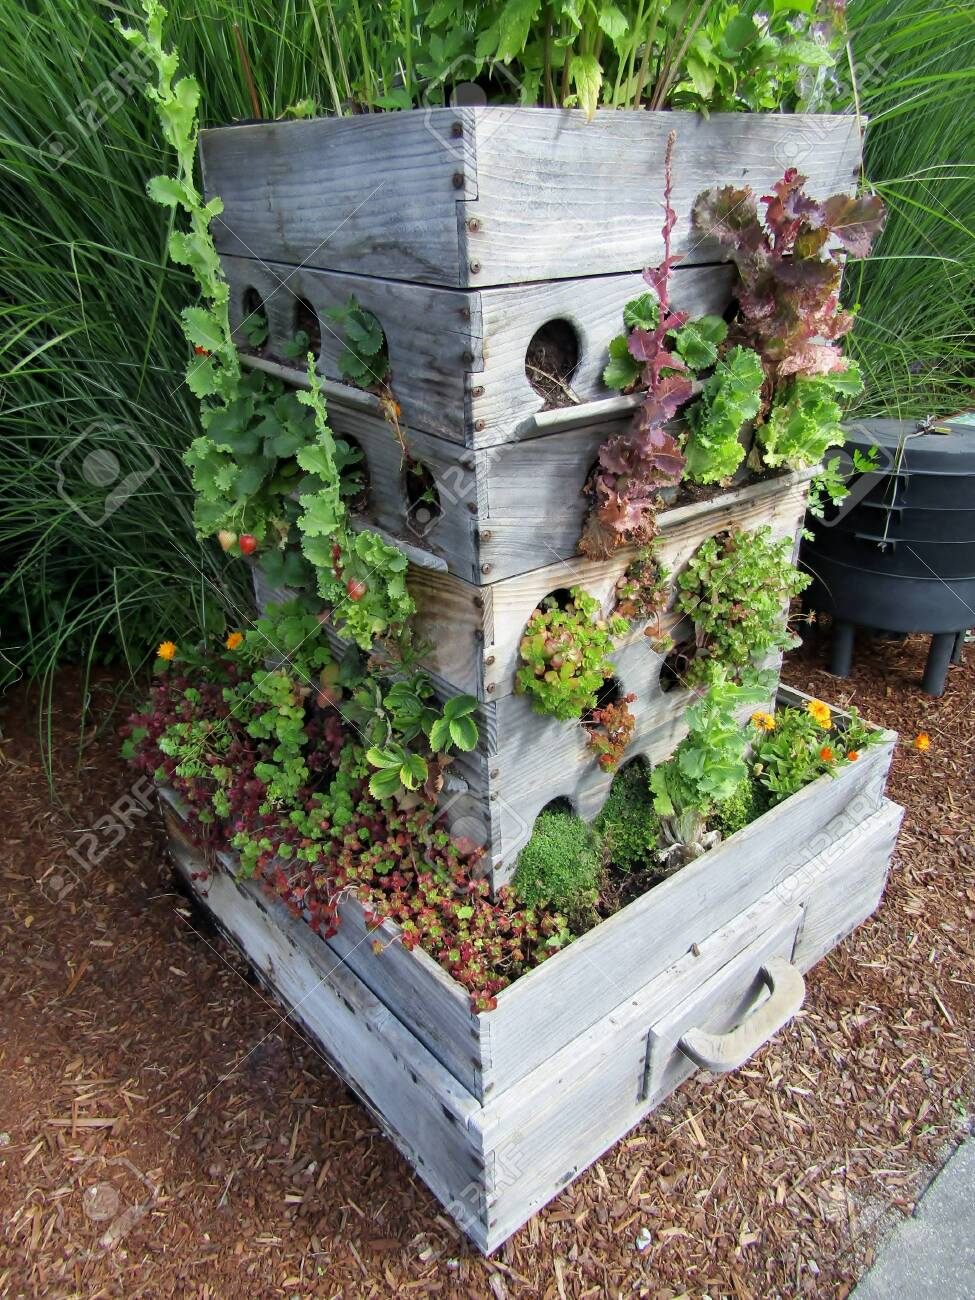 Compost Worm Bin And Grow Box Garden Planter Made Out Of Old